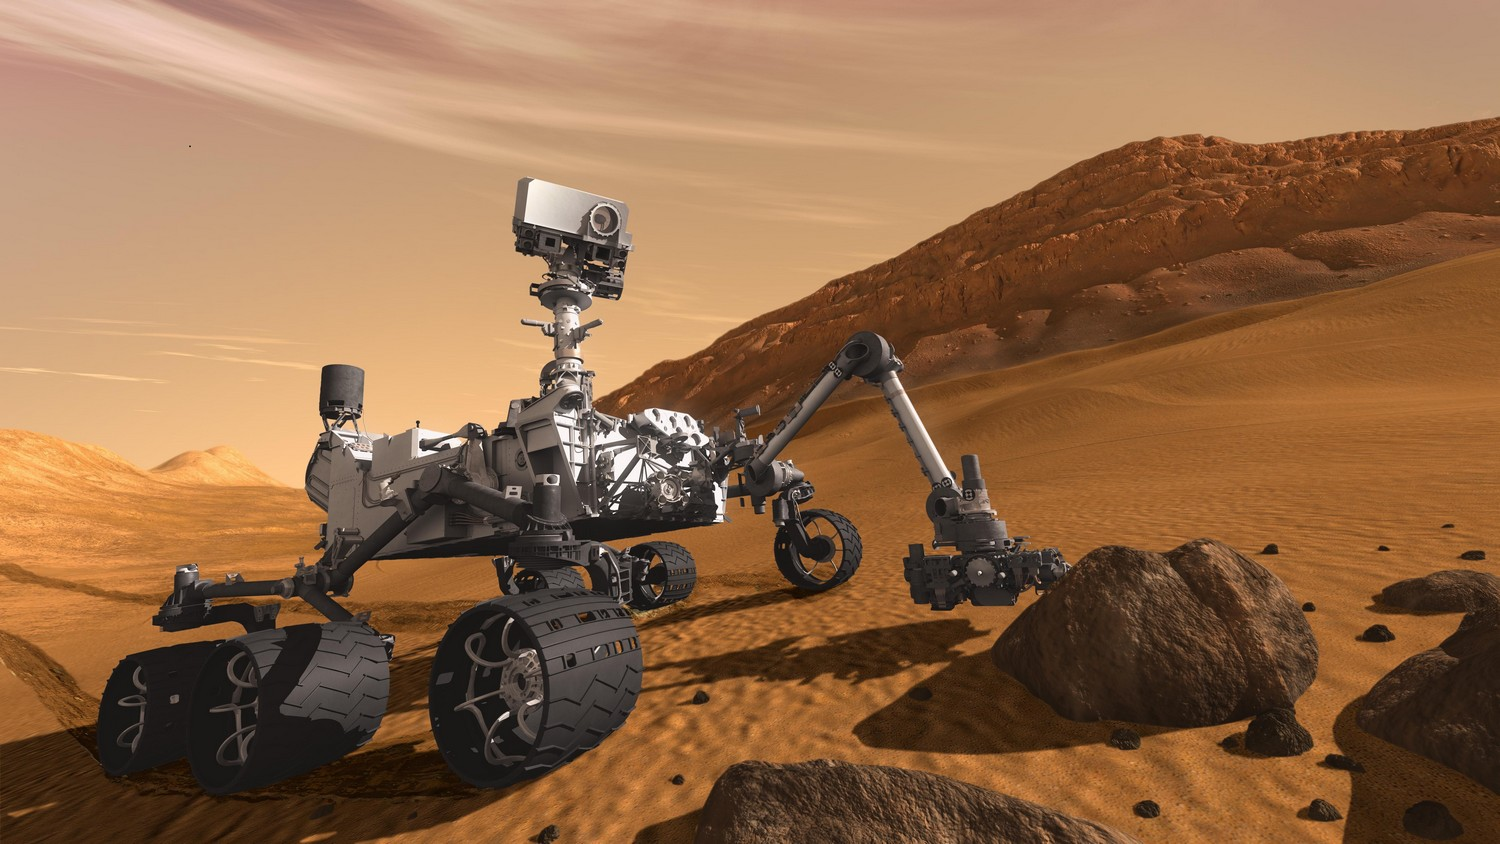 mars rover mission nasa - photo #6